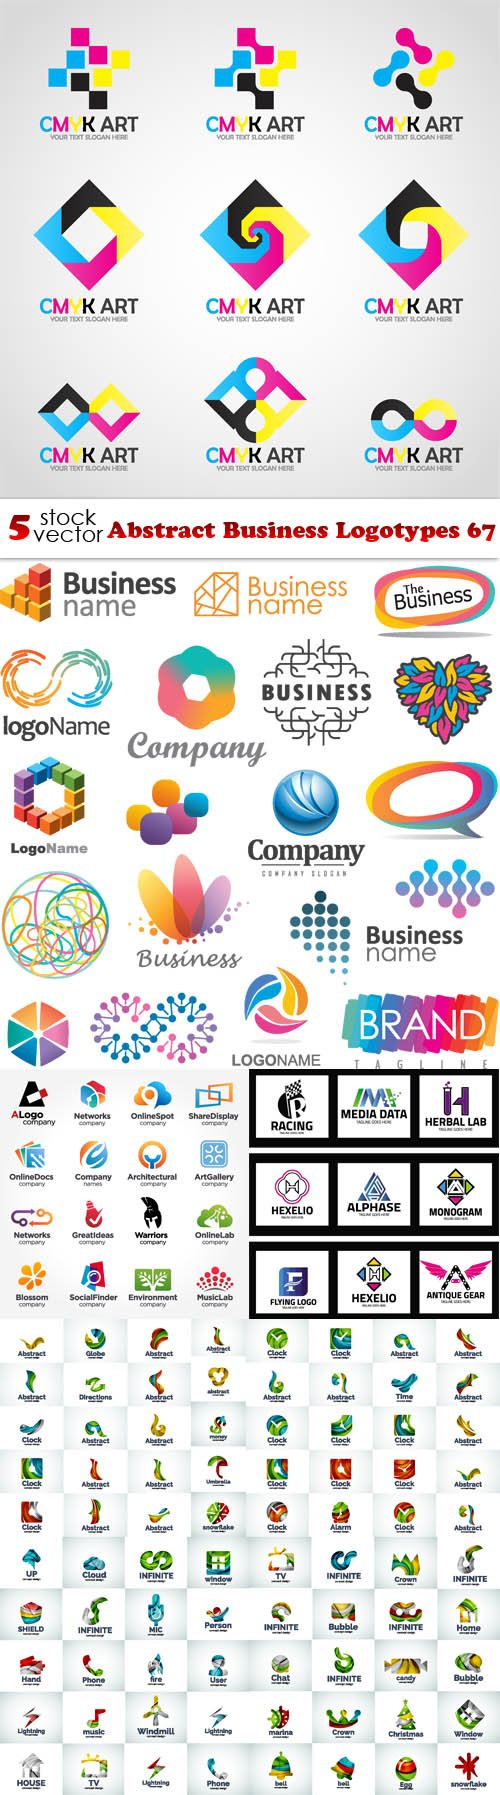 Vectors - Abstract Business Logotypes 67